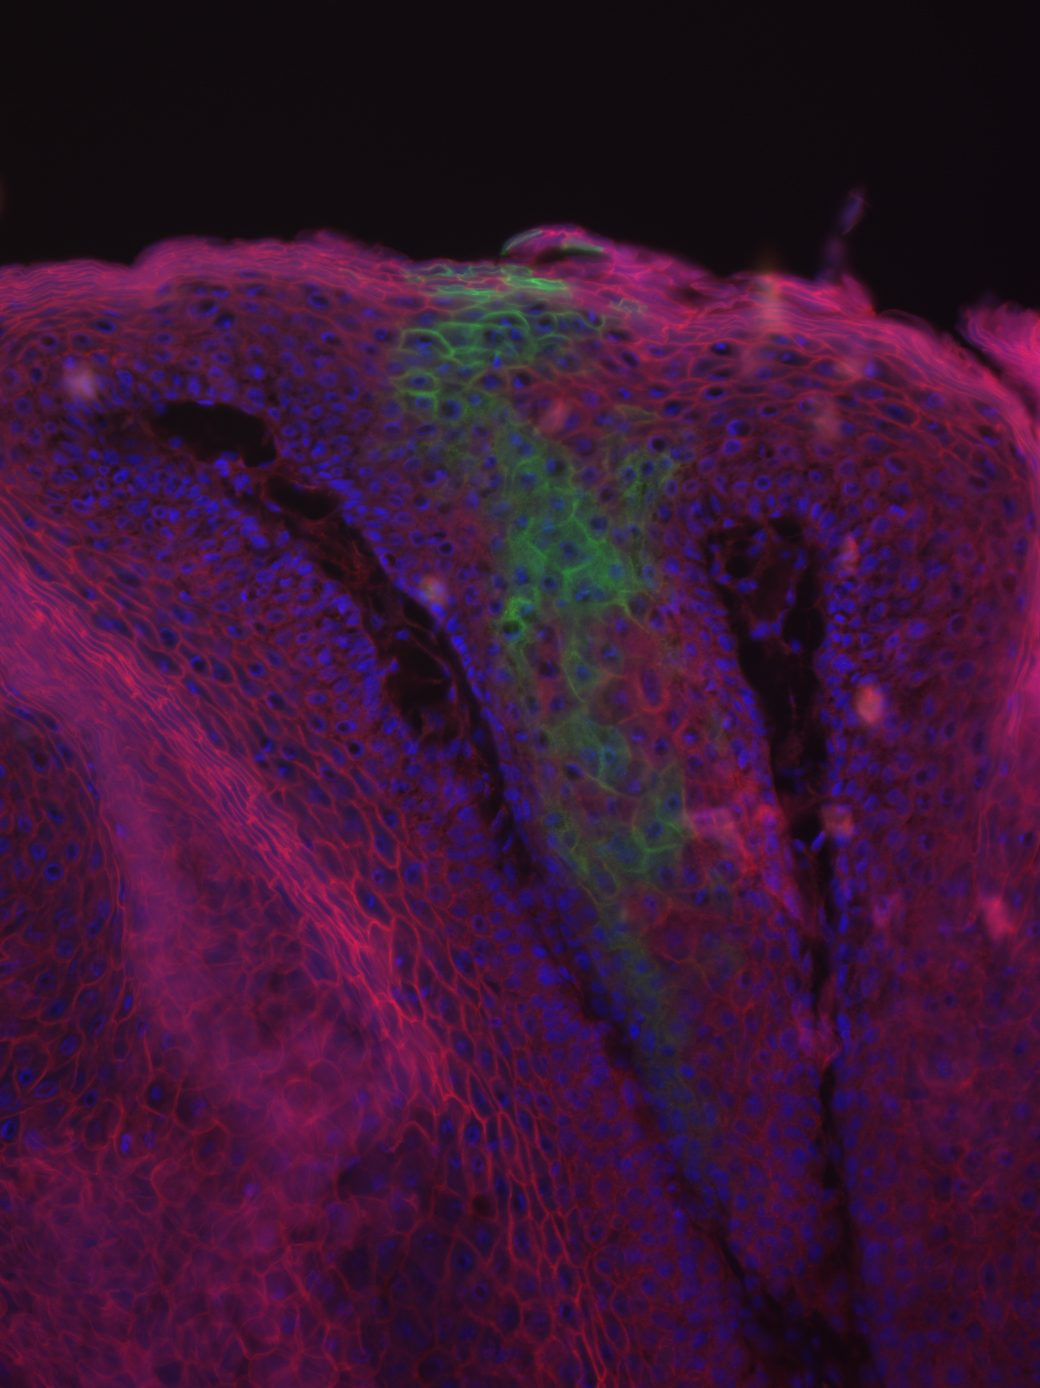 New Research Sheds Light on Pathway between Genetic Factor and Skin Tumors